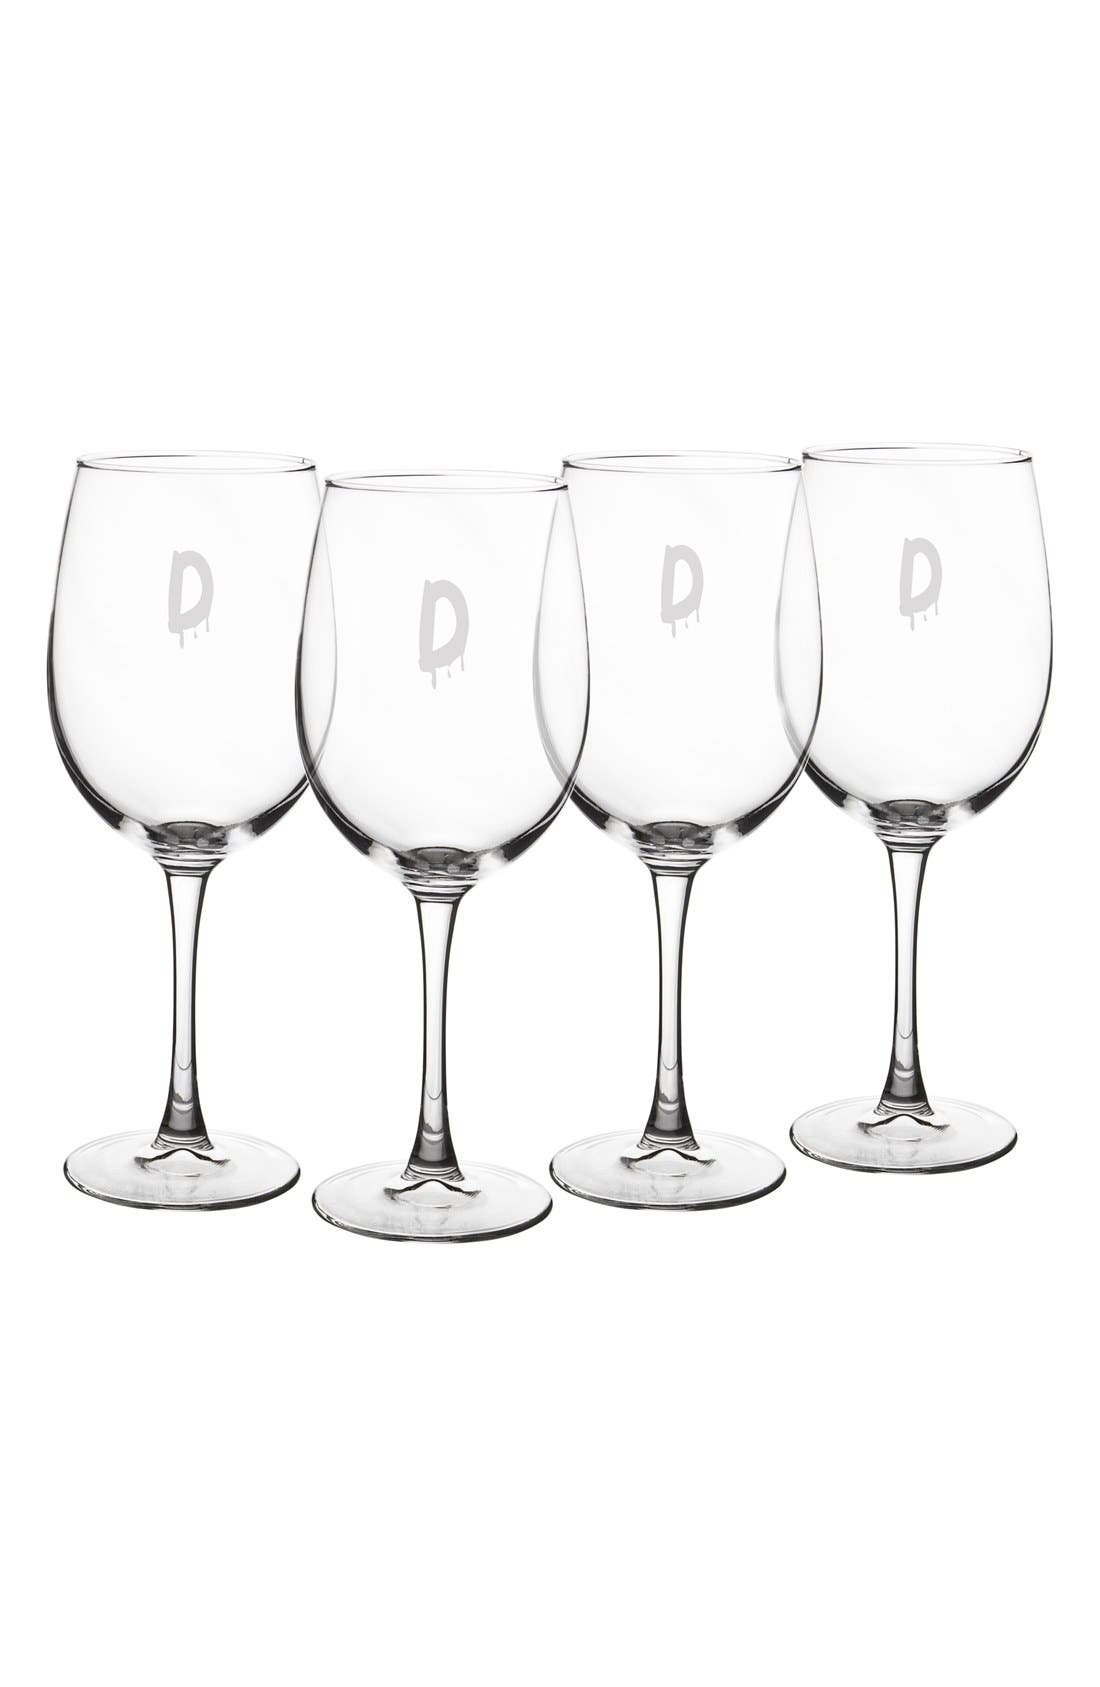 Alternate Image 1 Selected - Cathy's Concepts Spooky Monogram Set of 4 White Wine Glasses